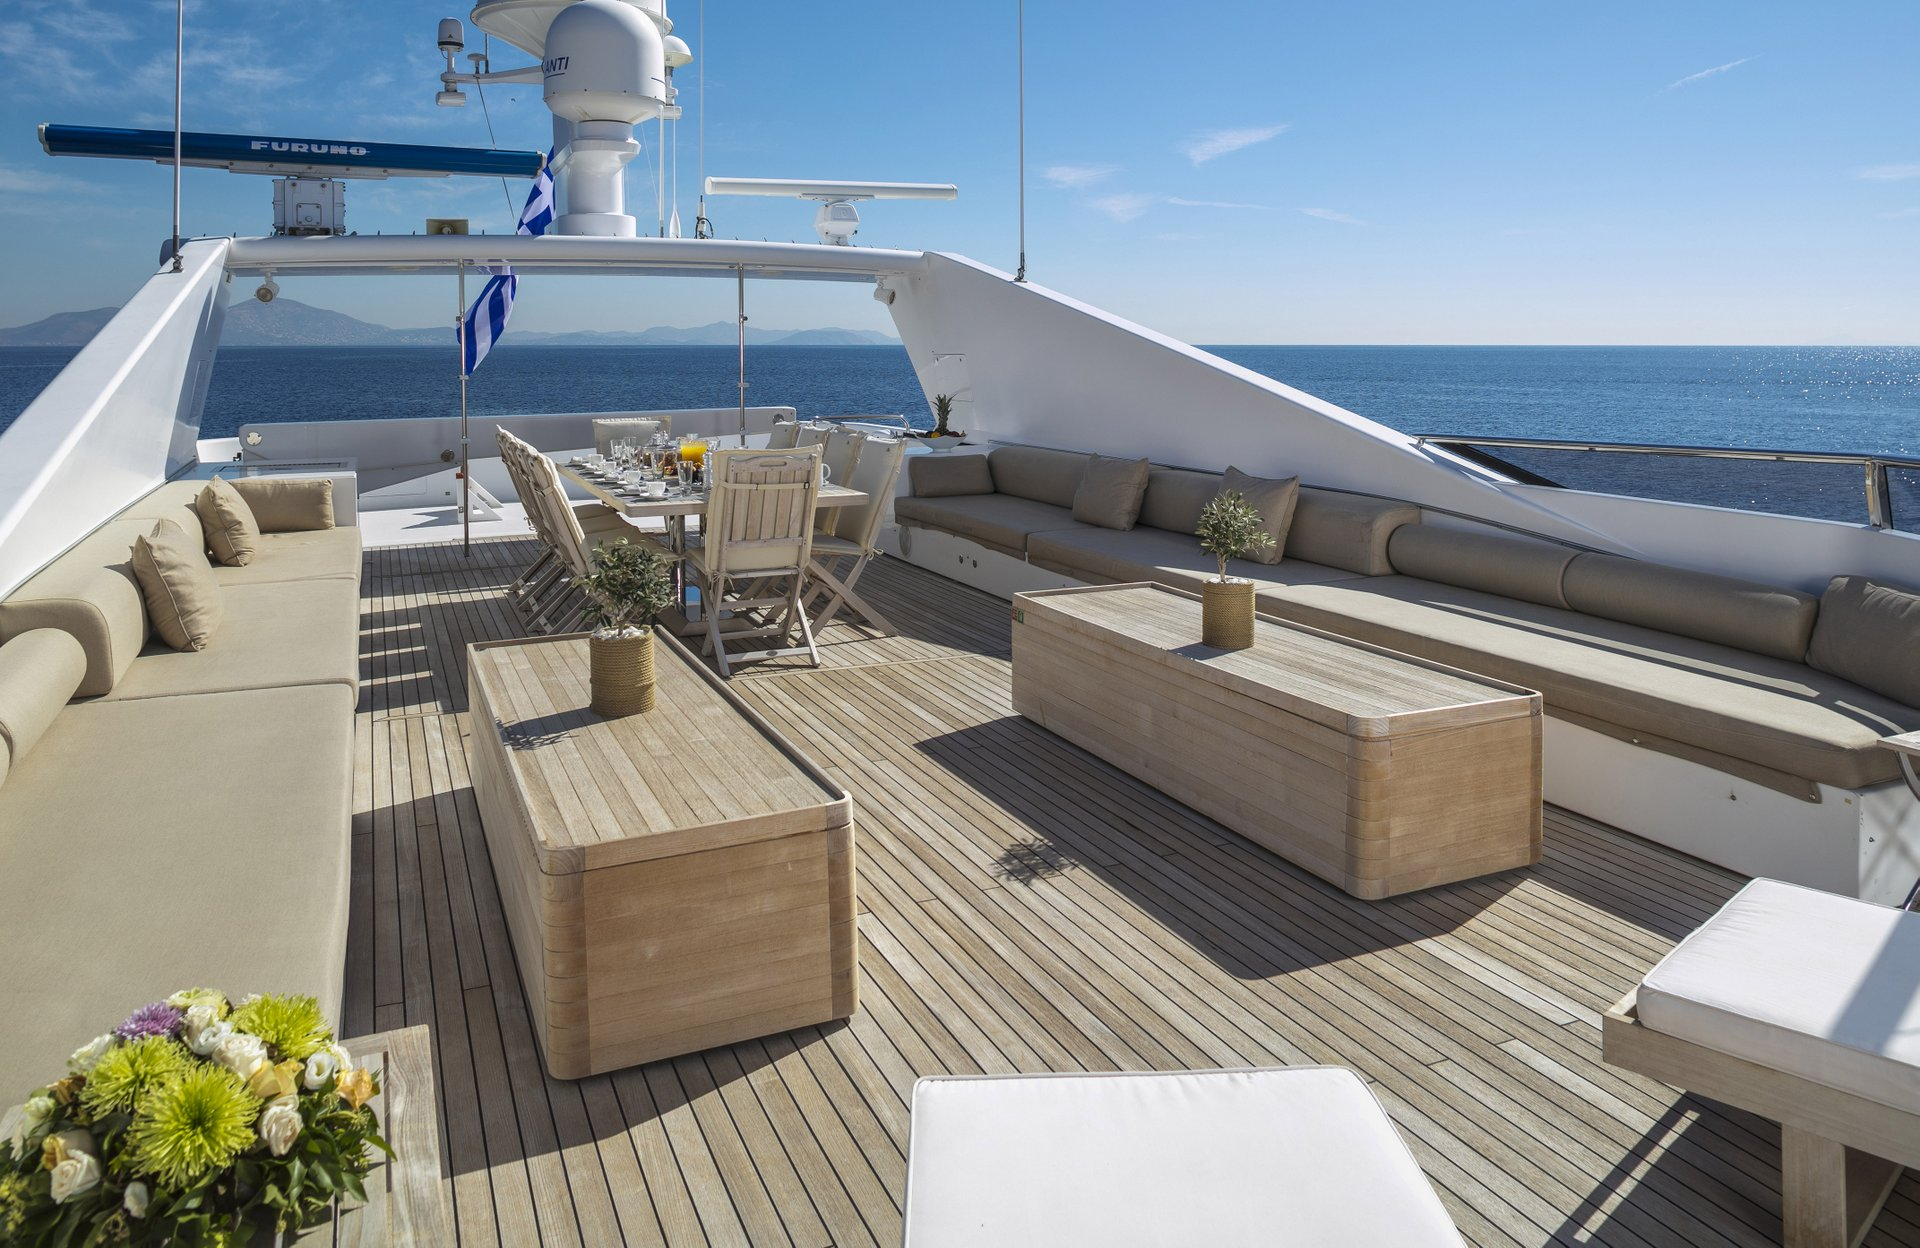 M/Y MABROUK yacht for charter deck